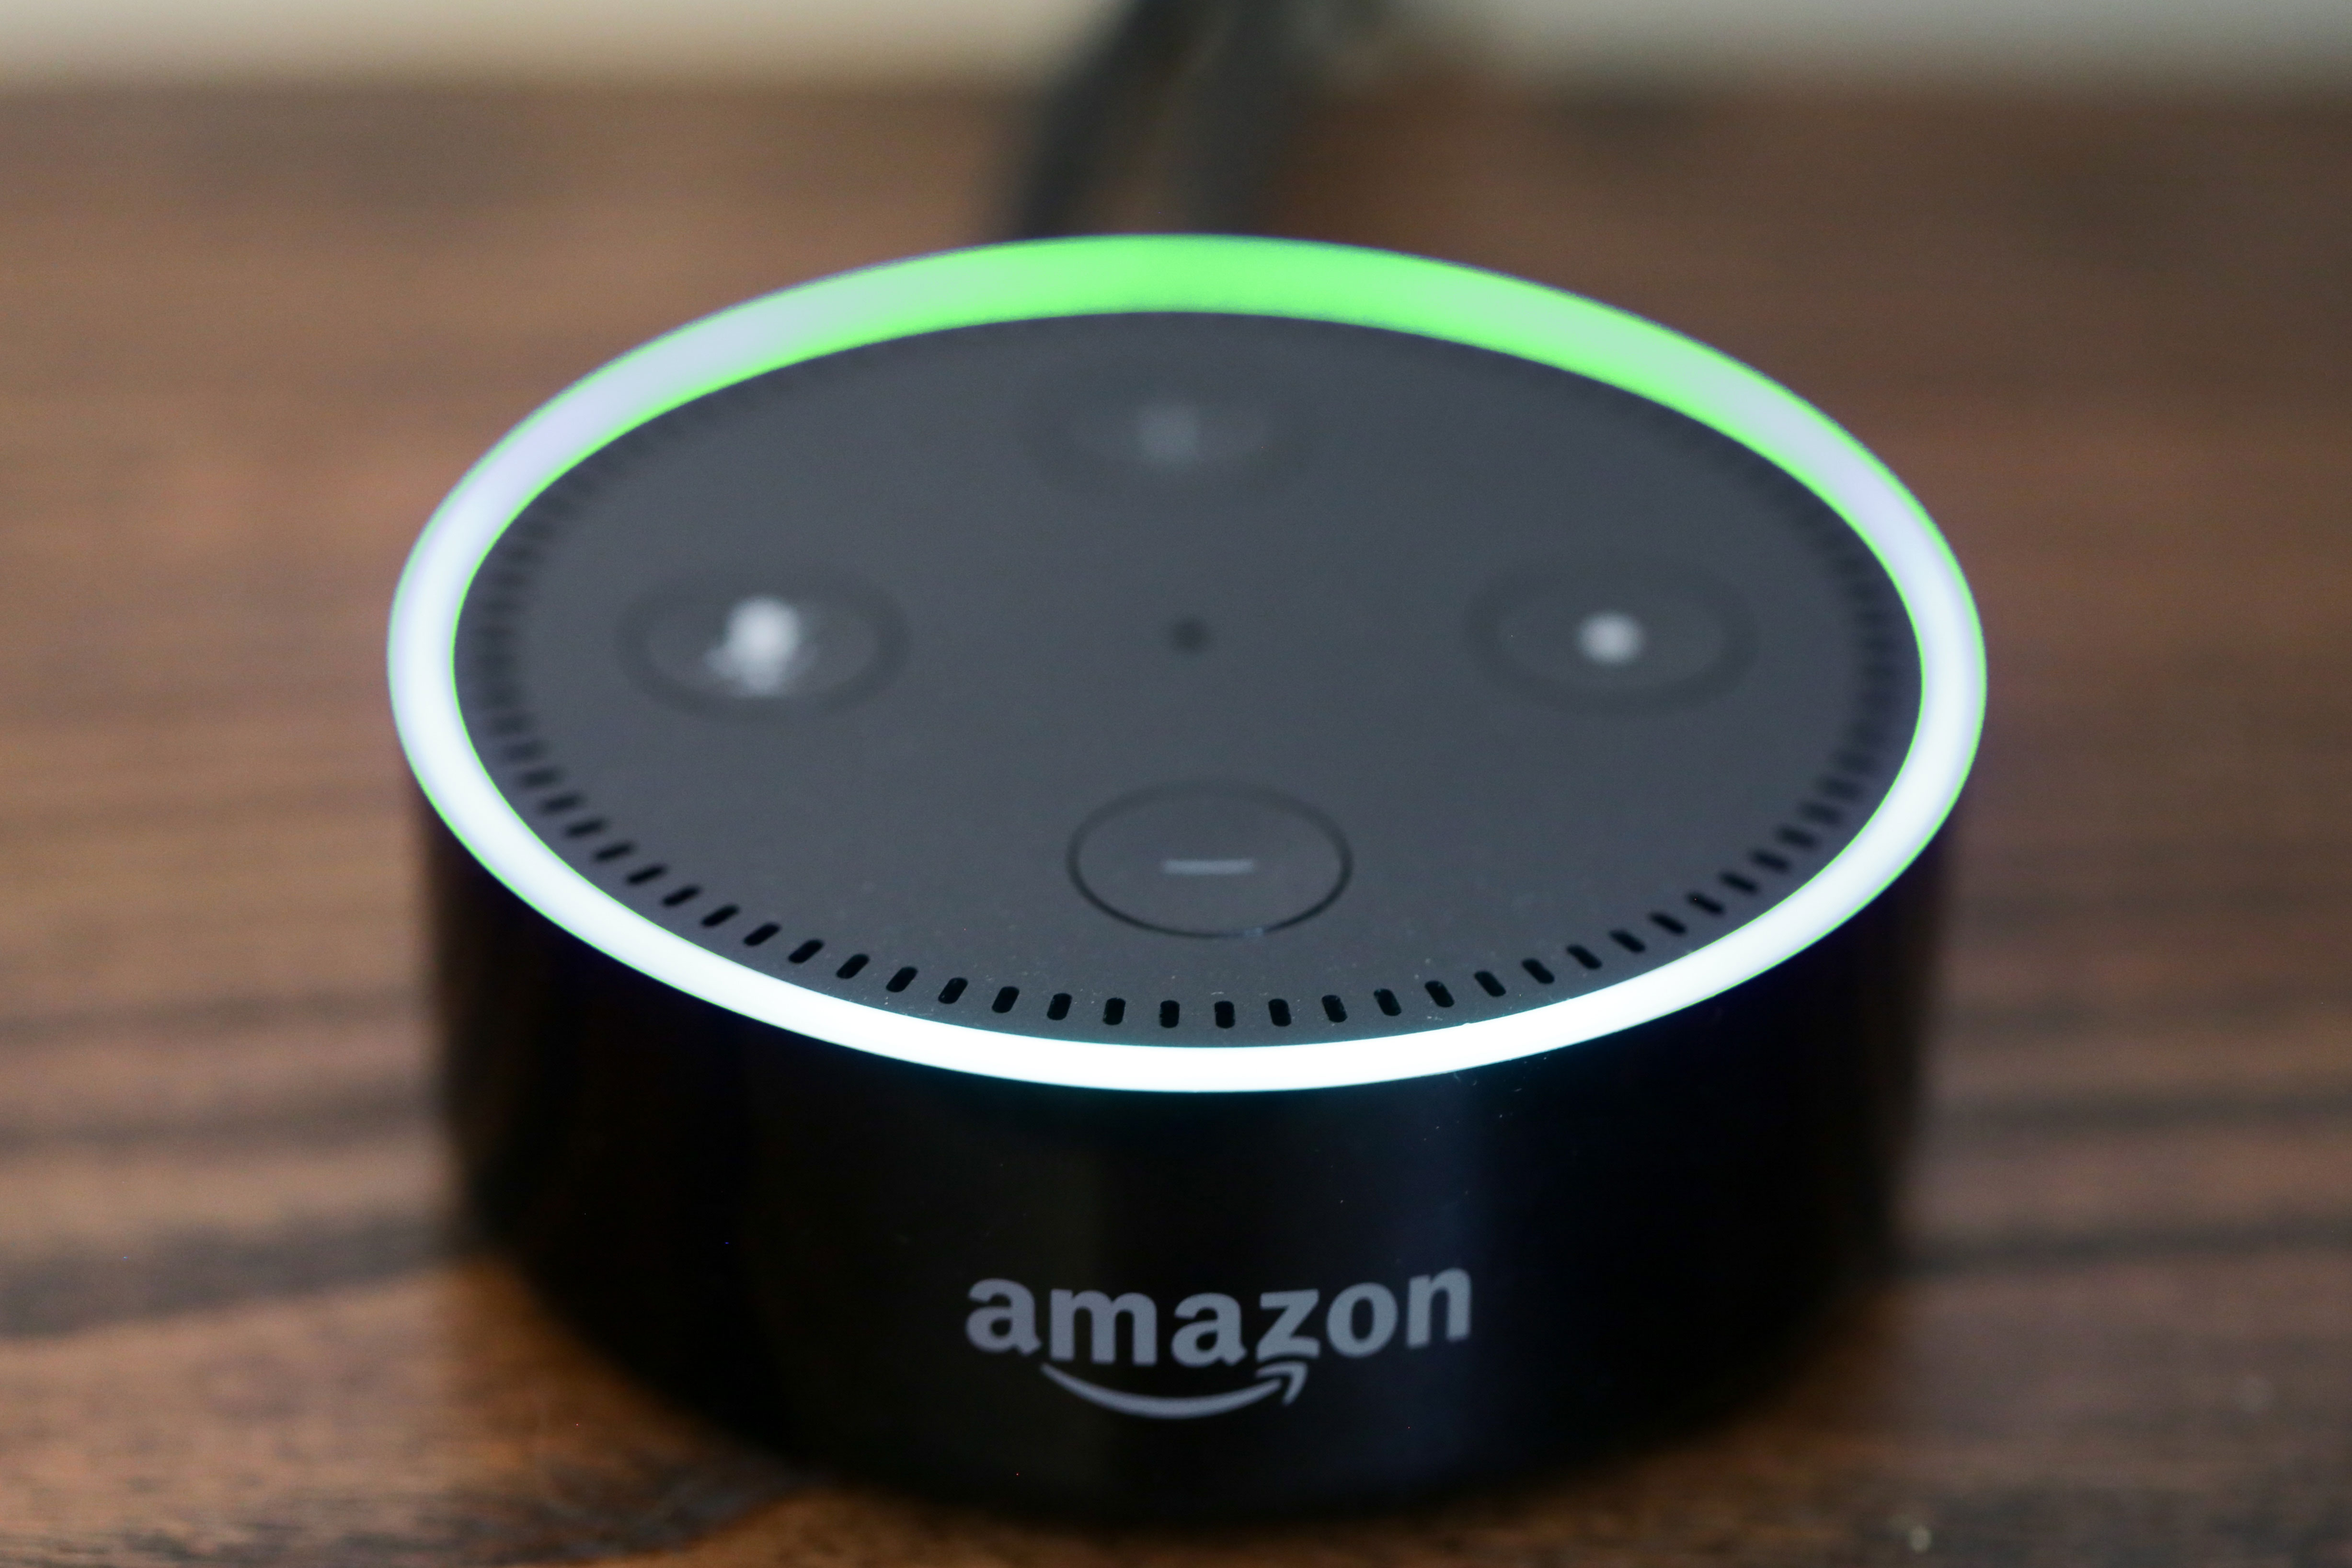 Alexa's opt-in notifications go live, allowing skills to alert you